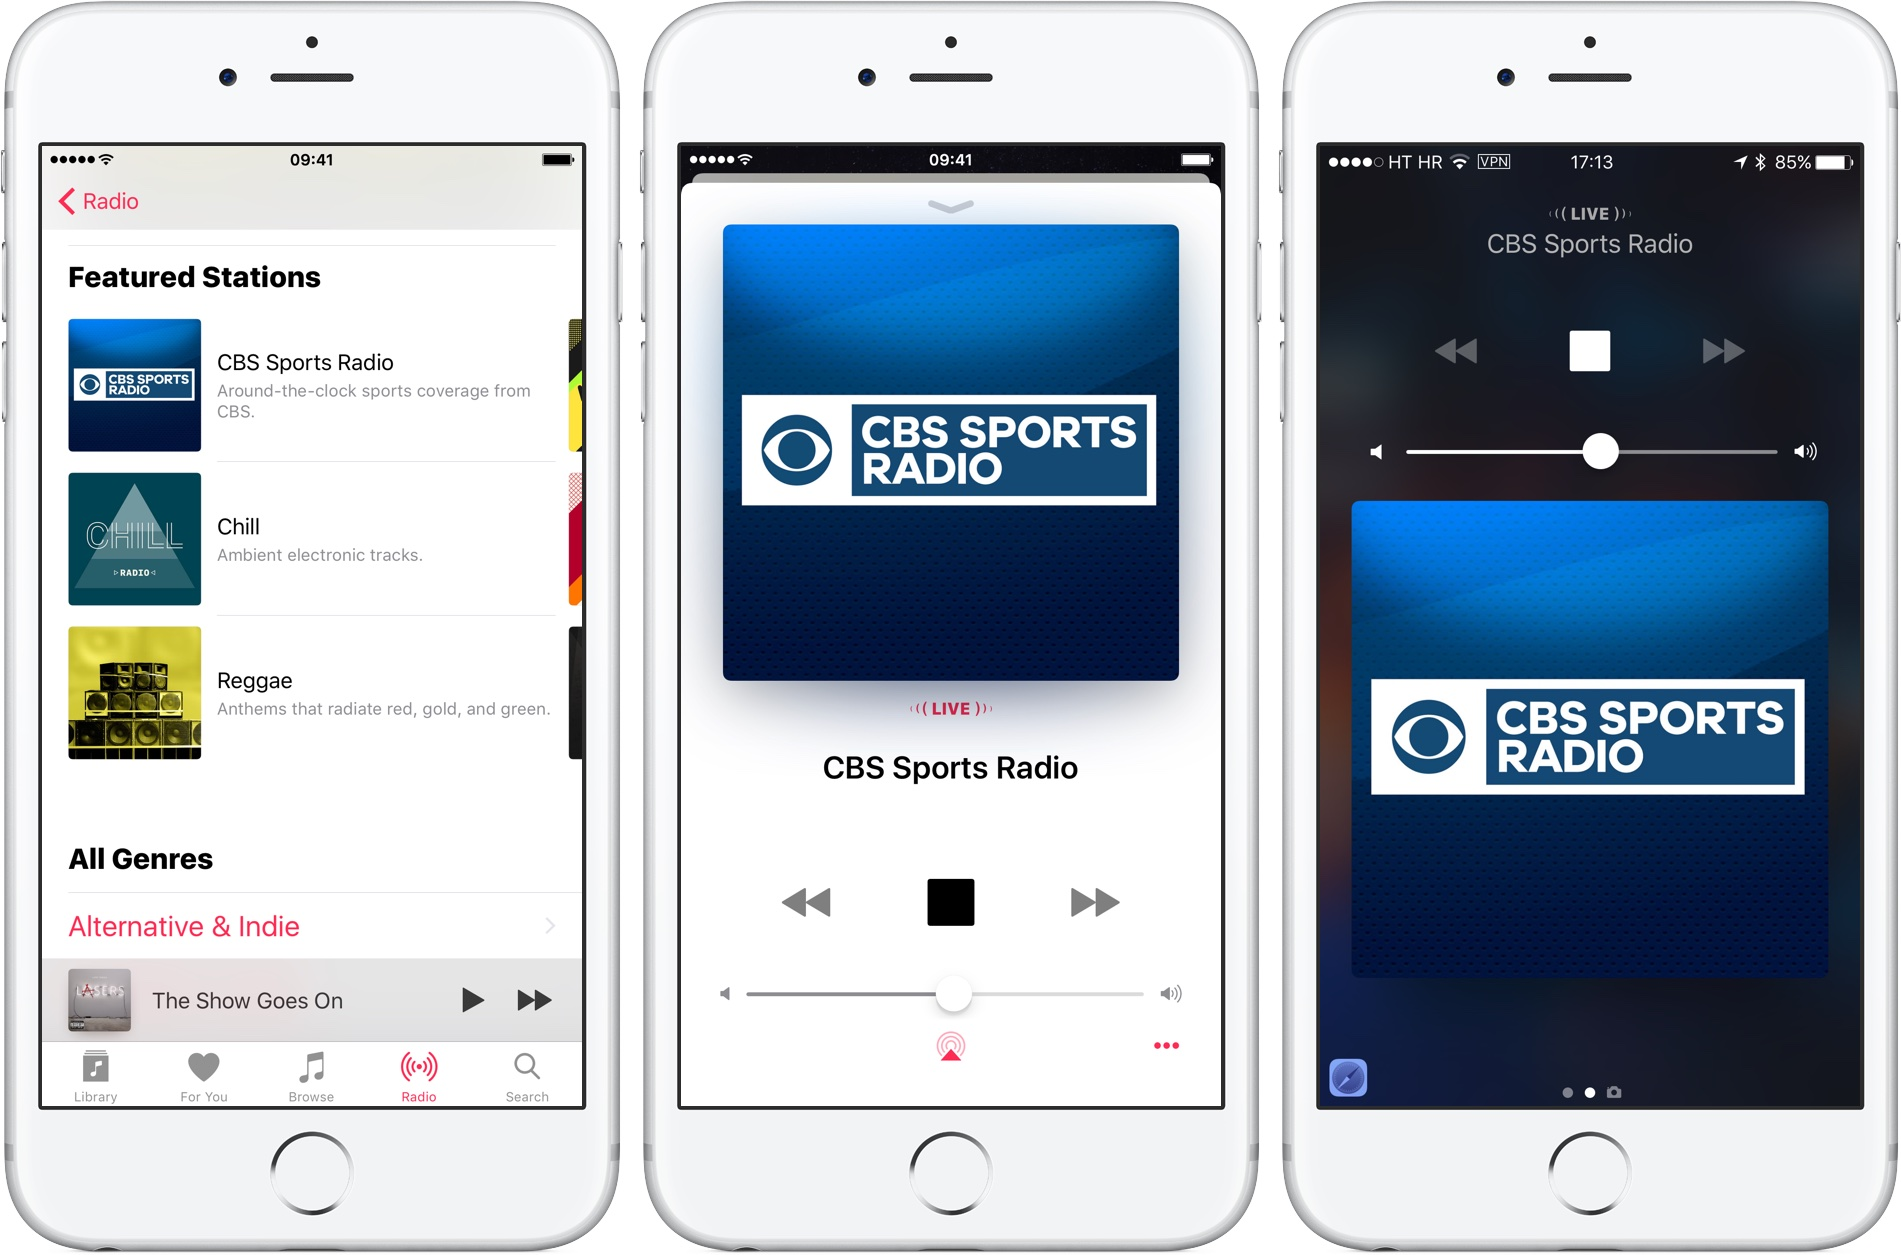 Cbs Sports Radio Now Available On Apple Music